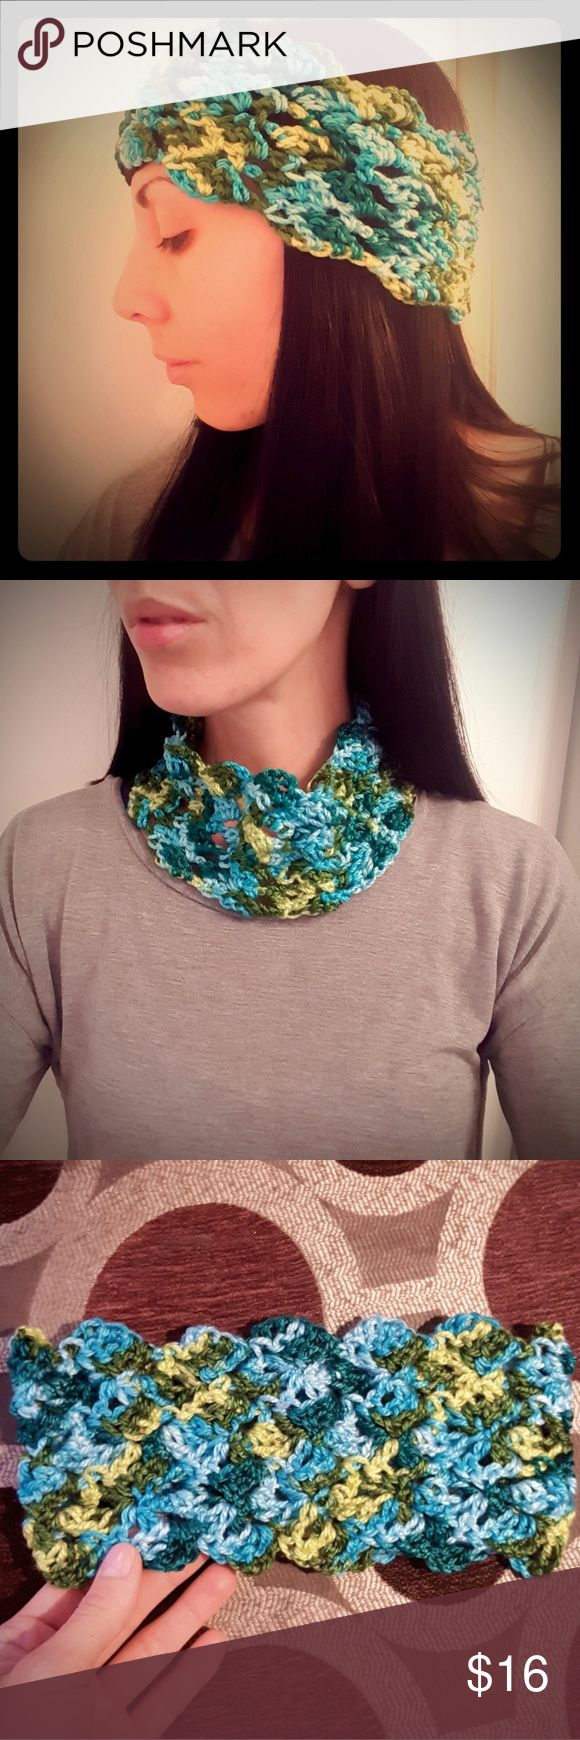 Chic Crochet Warm Winter Ear Muff Or Cowl Scarf This ear muff slash cowl scarf is an original design and is made of super soft cotton and acrylic yarn. No wool, non-itchy. Colors vary from turquoise to green. Open v-sitch weave makes this piece versatile and comfy! Give the gift of handmade this year! Measures 4 inches wide and stretchy approx 22 to 24 inches around. Can be worn with your hair up in a bun or ponytail at the same time keep those ears warm. Also wear around neck for a no fuss…